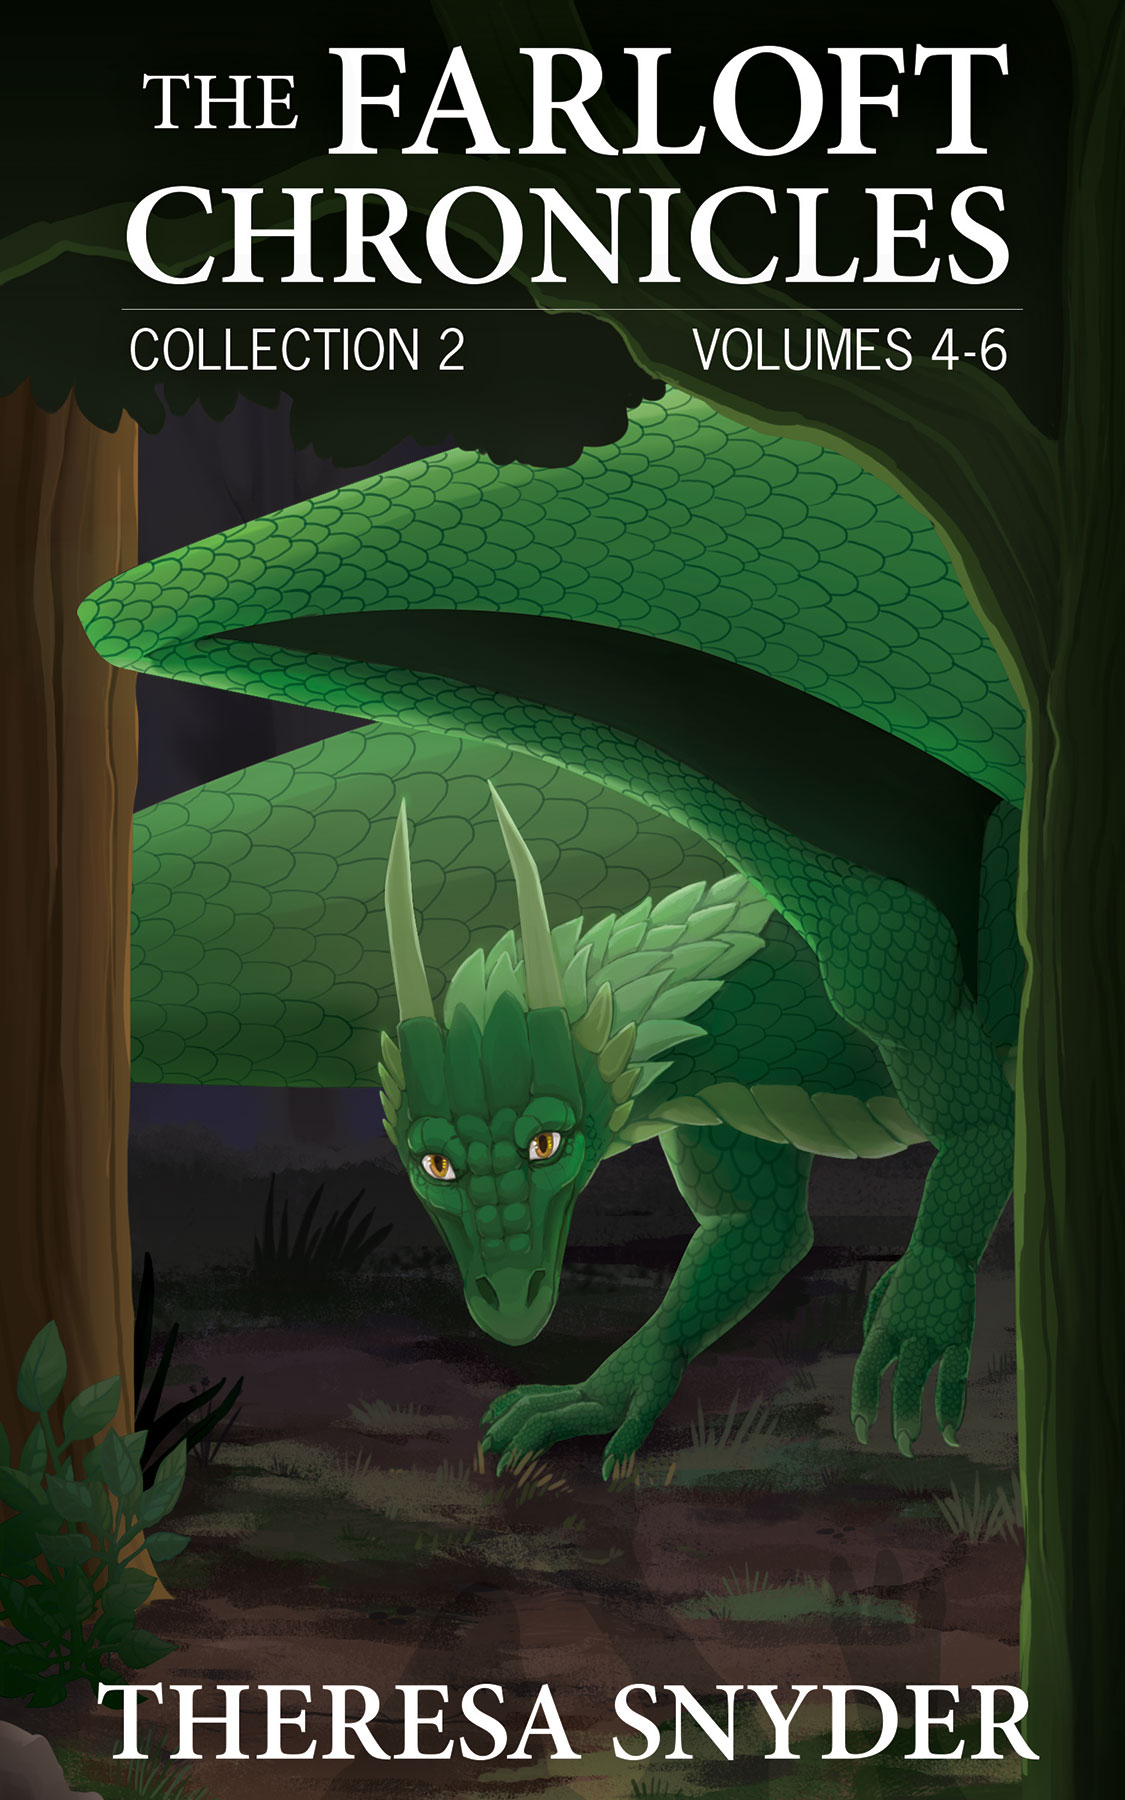 The Farloft Chronicles, Collection 2